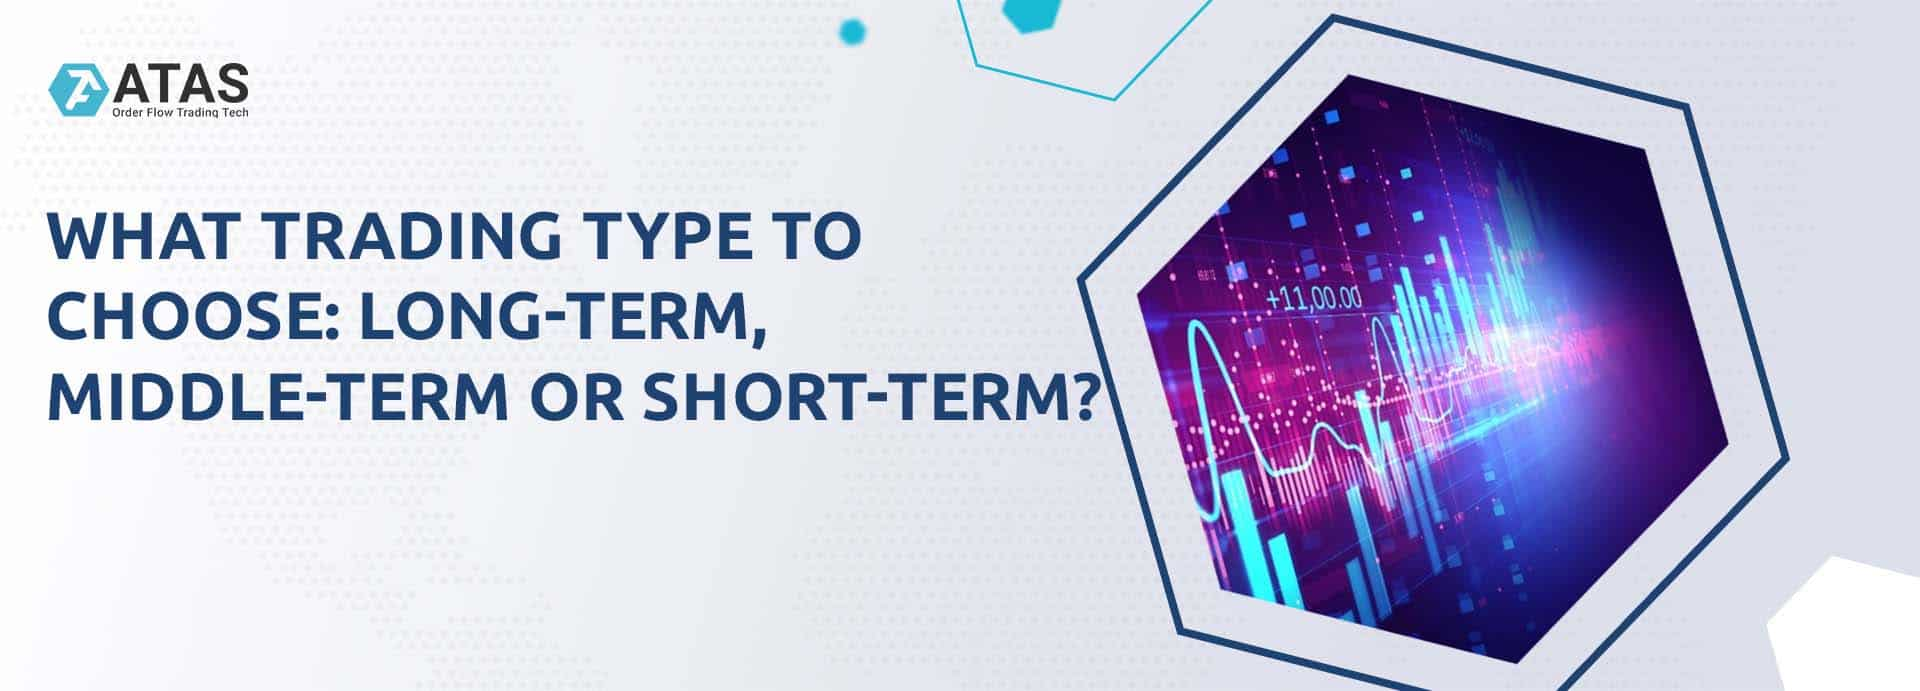 What trading type to choose long-term, middle-term or short-term